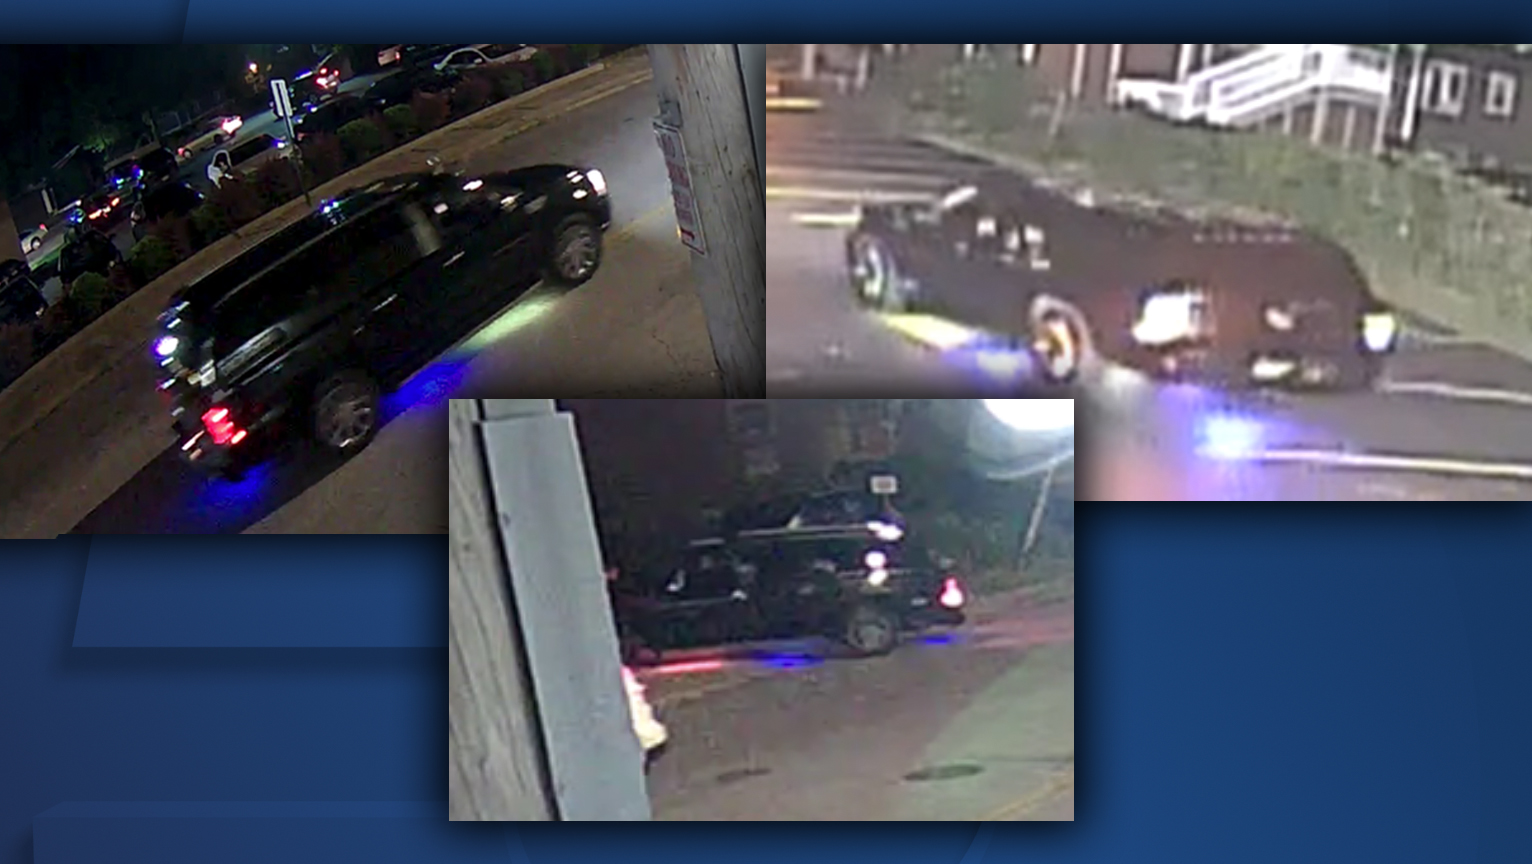 Akron Pd Seek Persons Of Interest After Driver Apparently Ran Over Man Child Intentionally Killing Them This gyro mimics the safe rx flight modes, uses just one channel for flight mode selection and panic button operation. akron pd seek persons of interest after